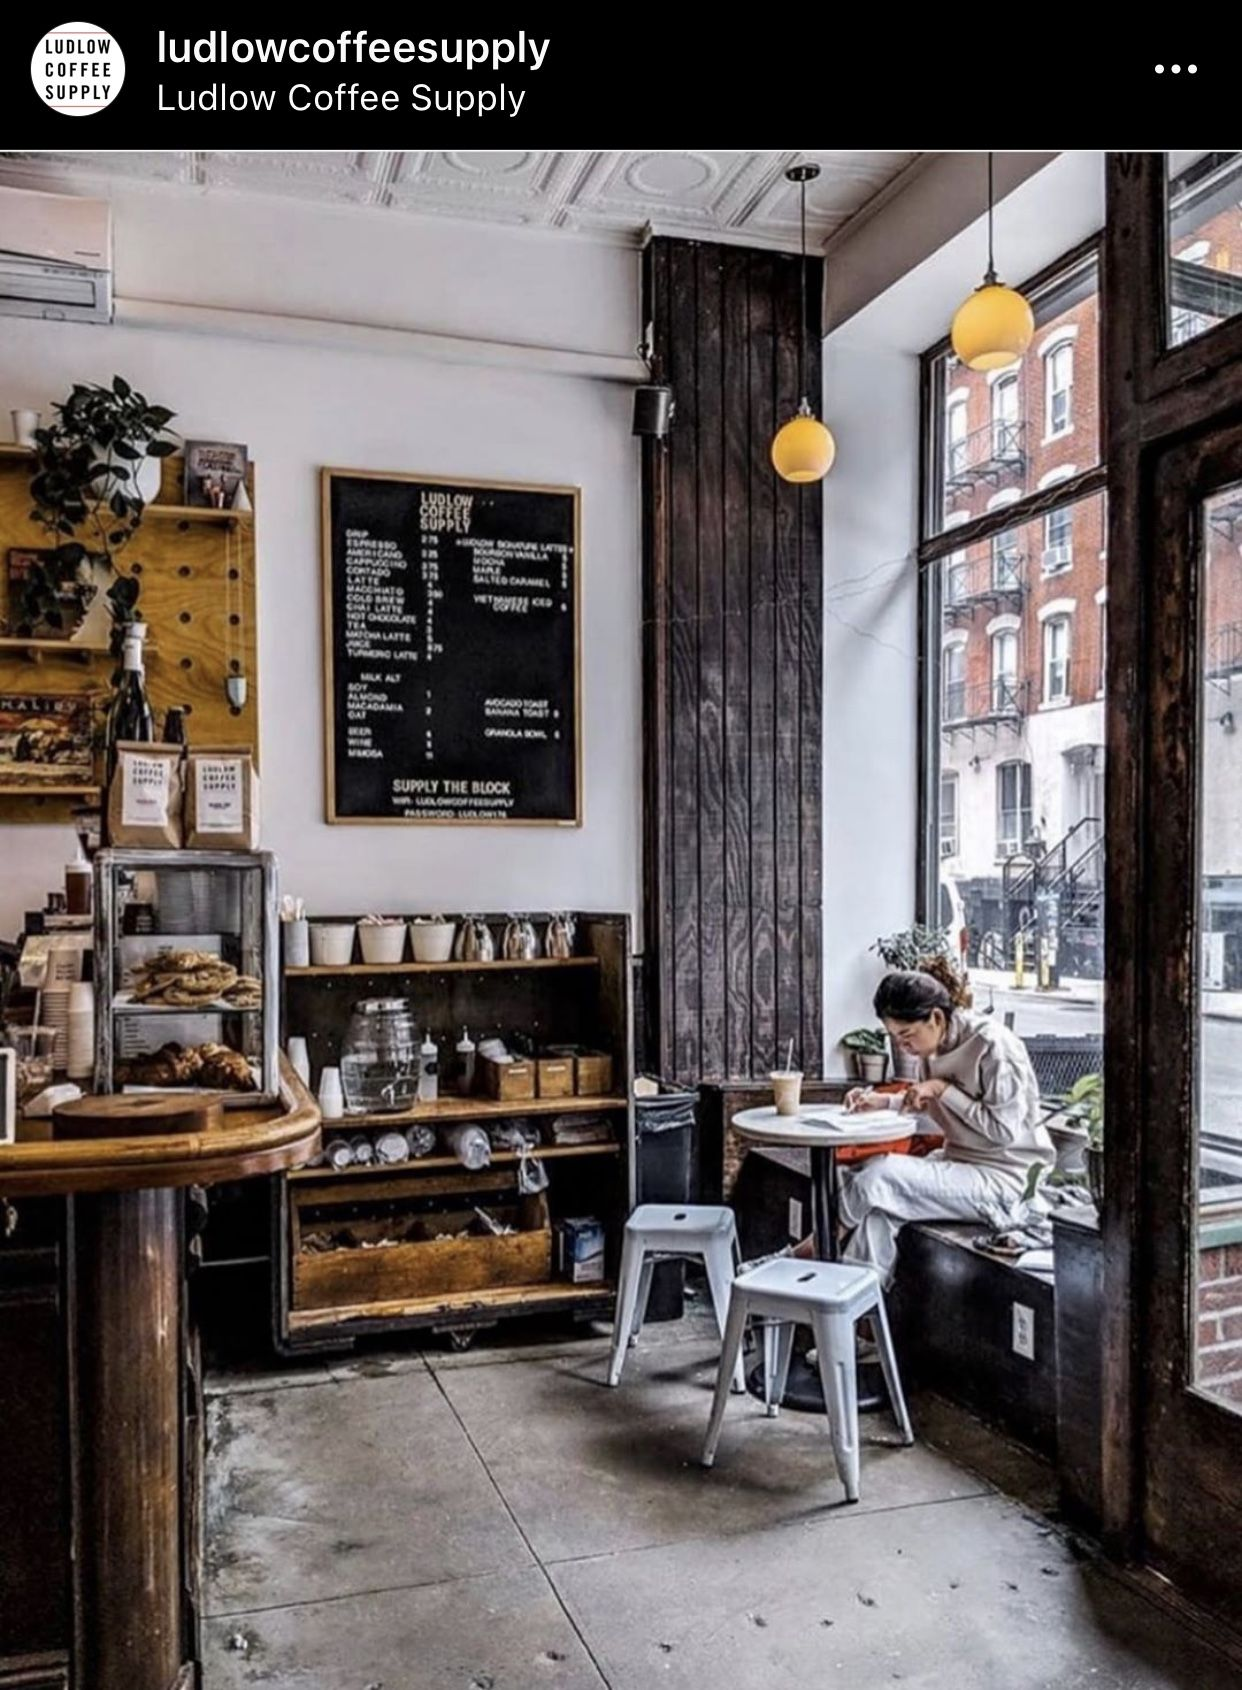 Pin By Luana Gruber On Persephone Erica Sage In 2020 Cafe Interior Coffee Shop Decor Coffee Shops Interior